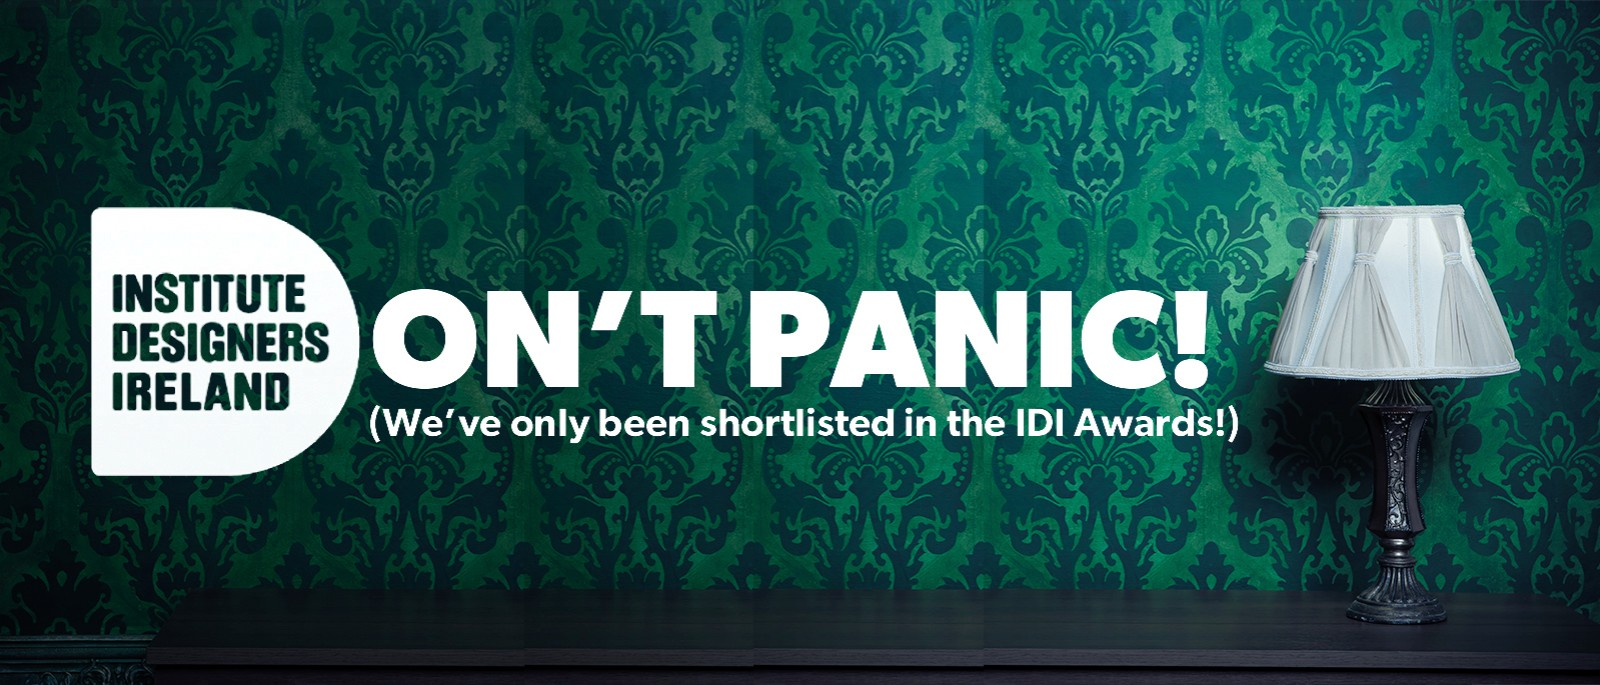 DON'T PANIC! We're on the shortlist...